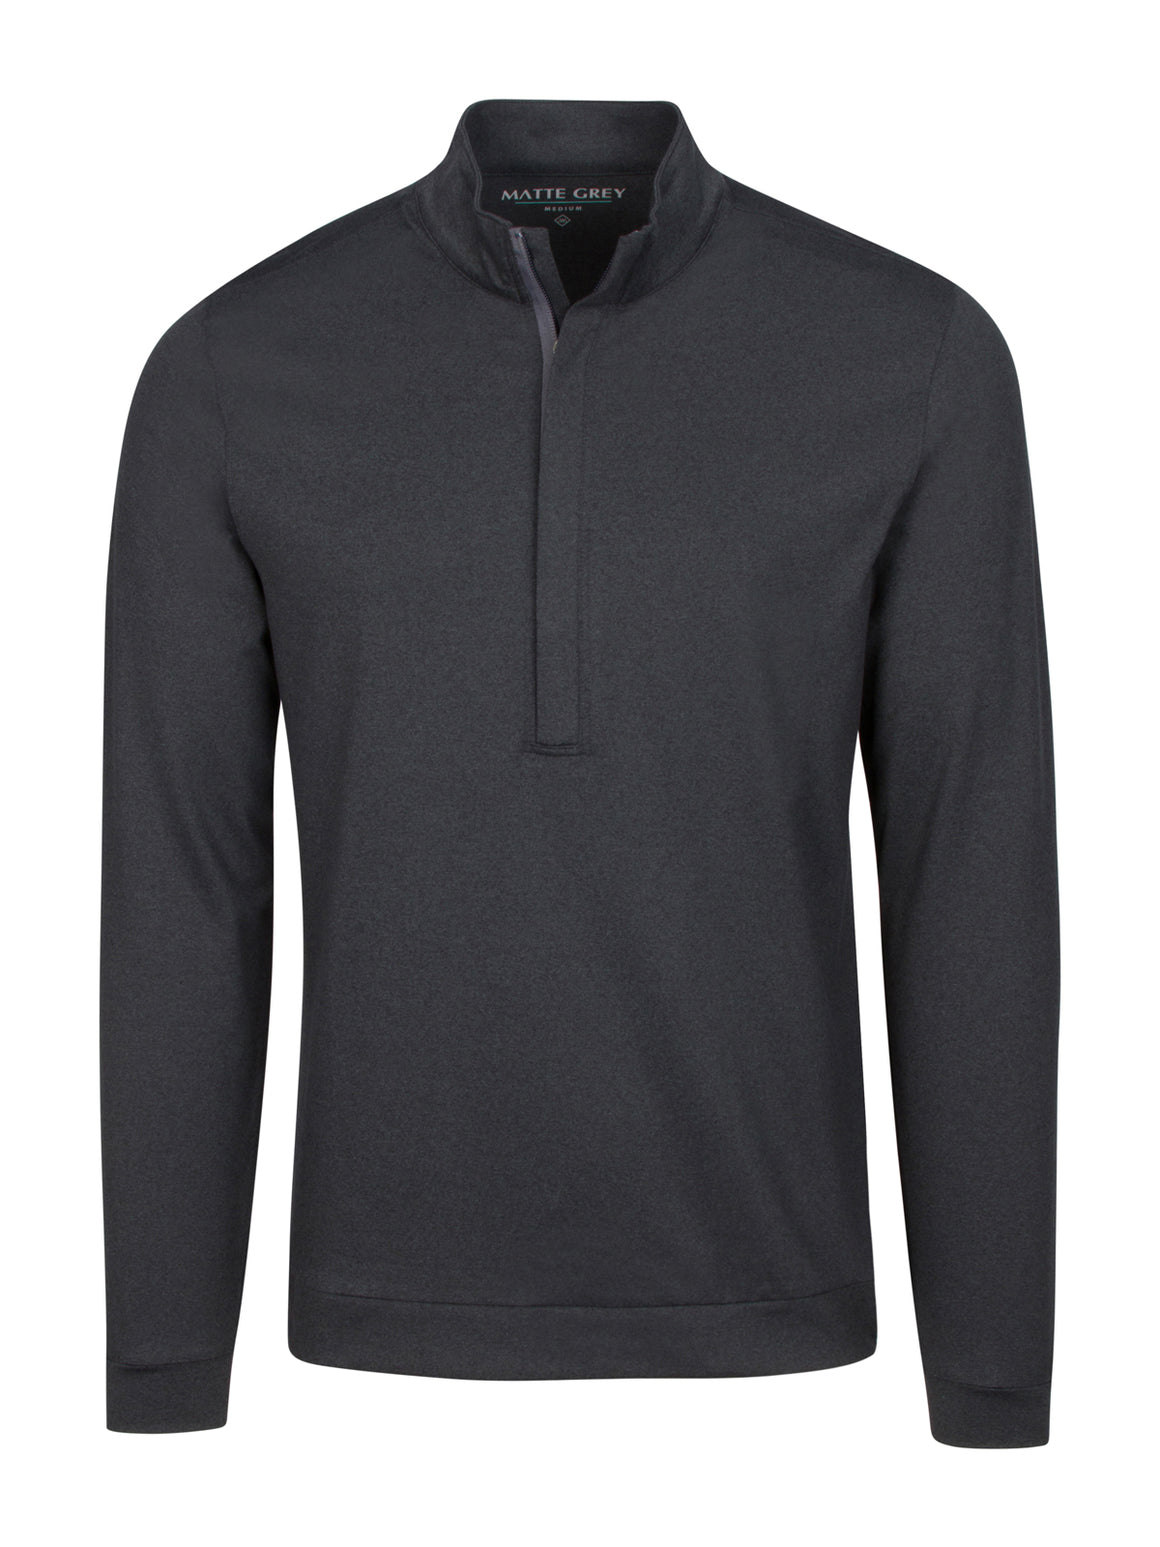 Hightower Half Zip - Black Heather